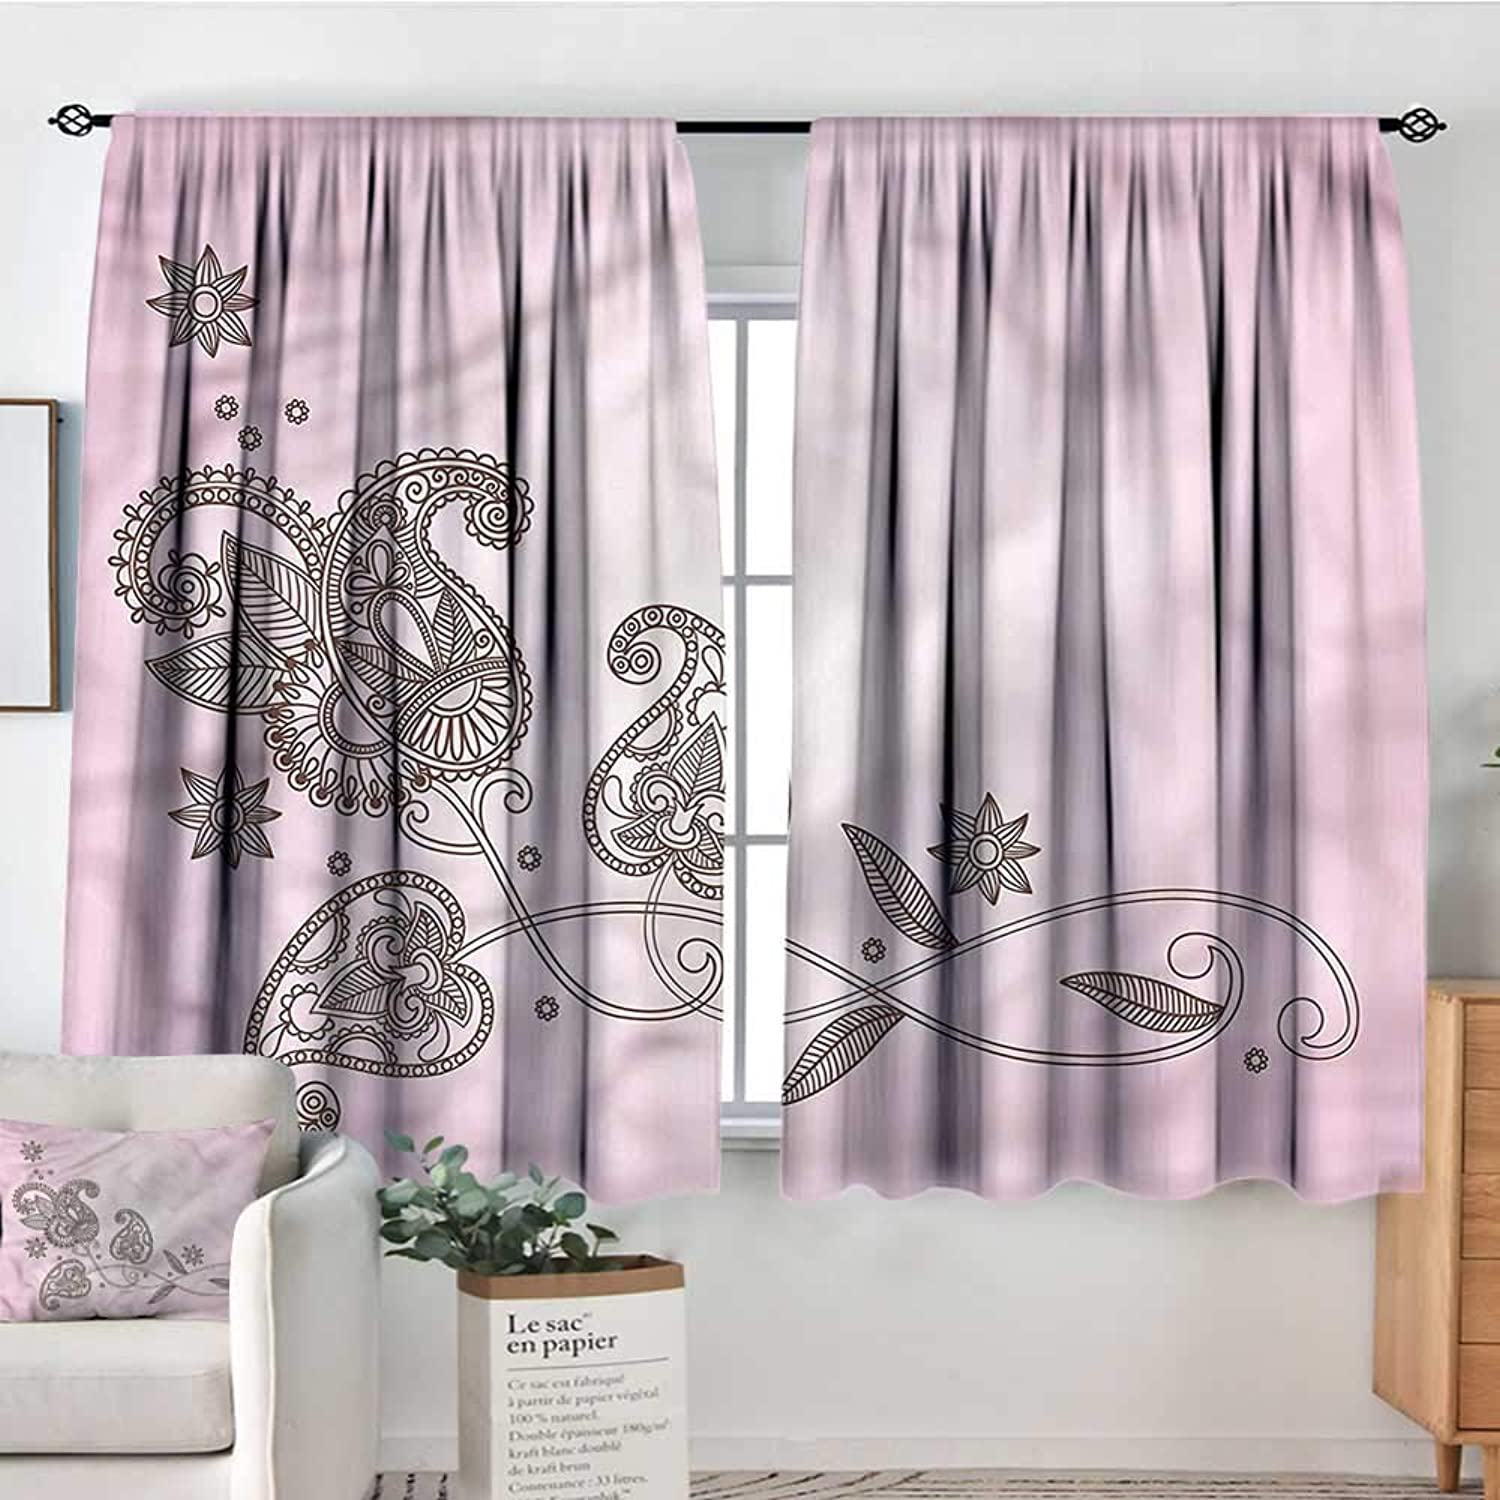 Sanring Henna,Bocking Ight Rod Curtains Patterned Leaf Motif 52 x63  for Baby Bedroom